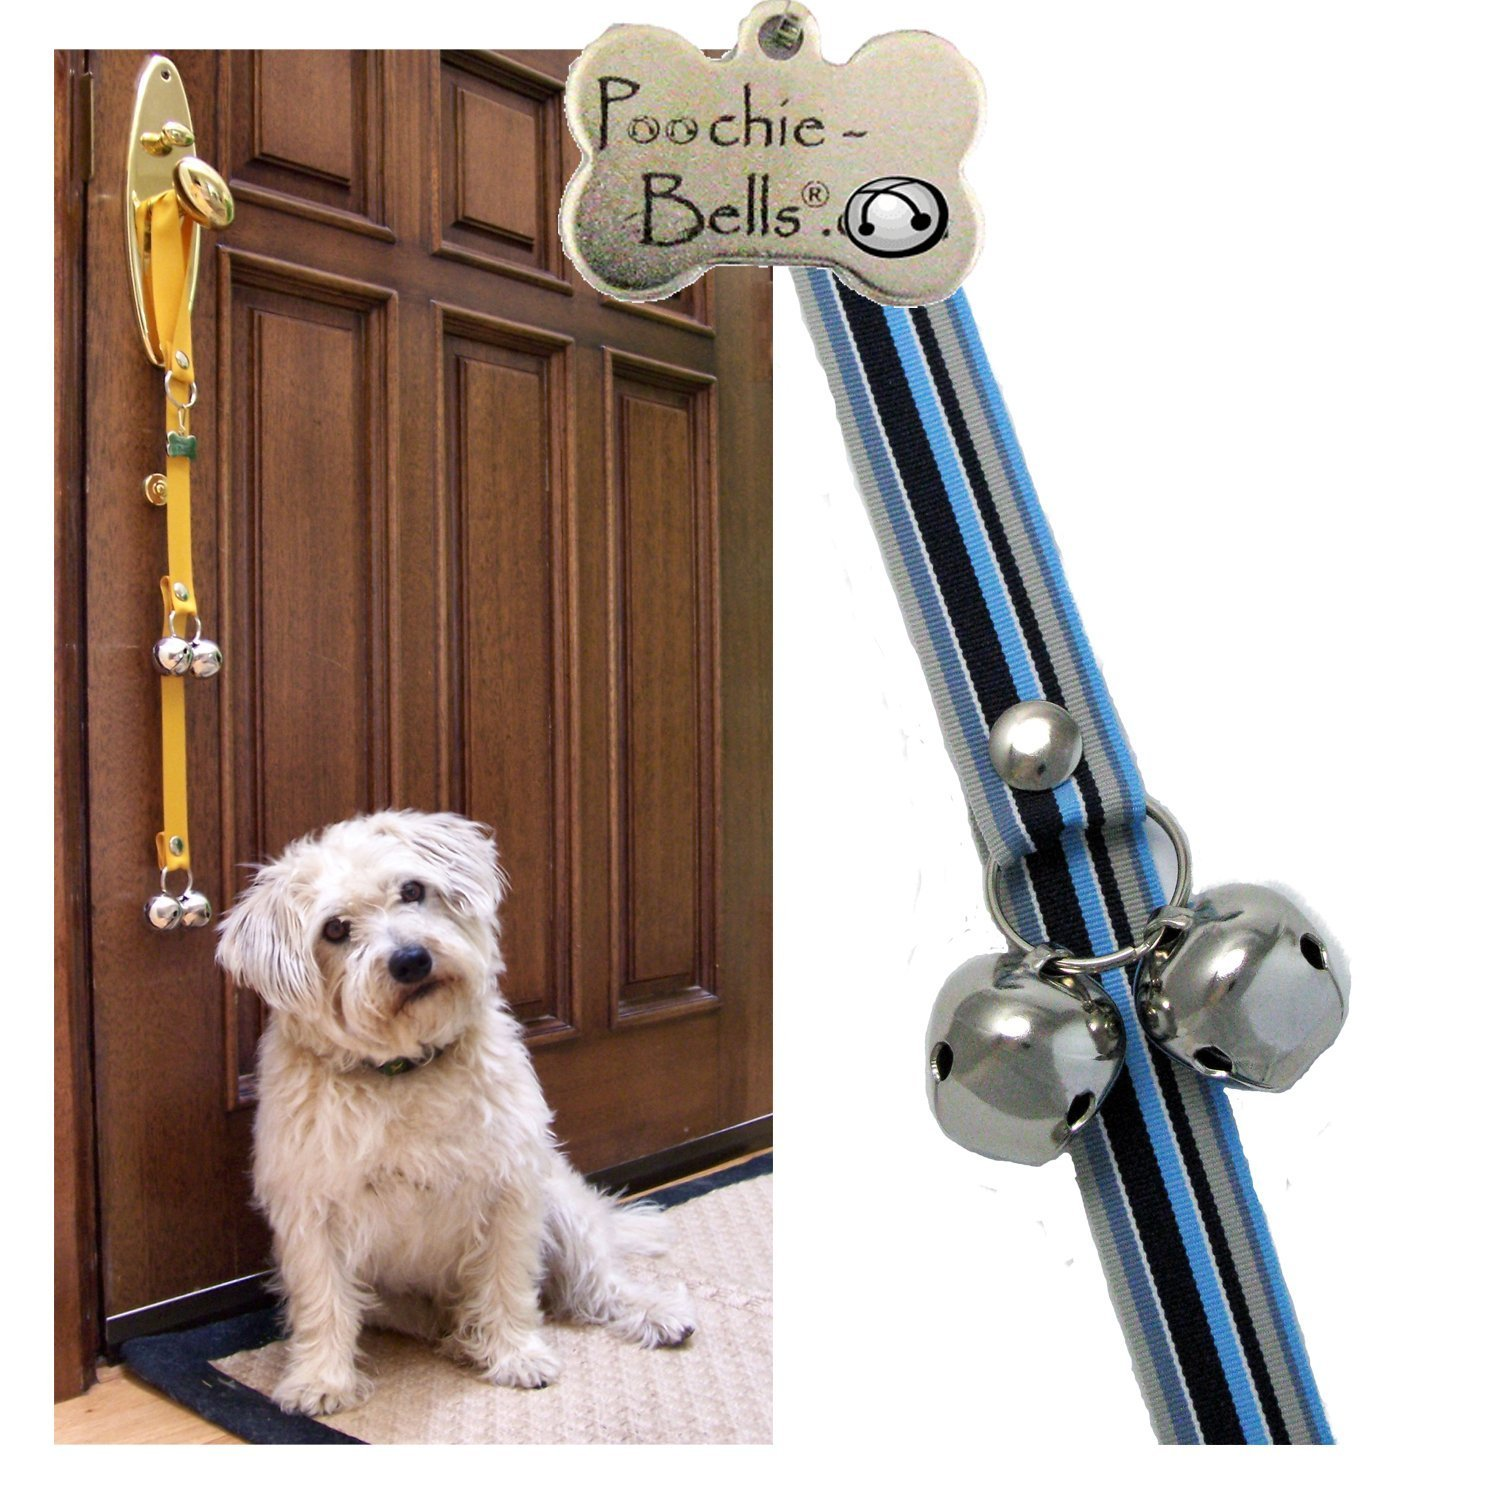 PoochieBells Housetraining Dog Doorbell, Stary Night Stripe, Blue Stripes Design